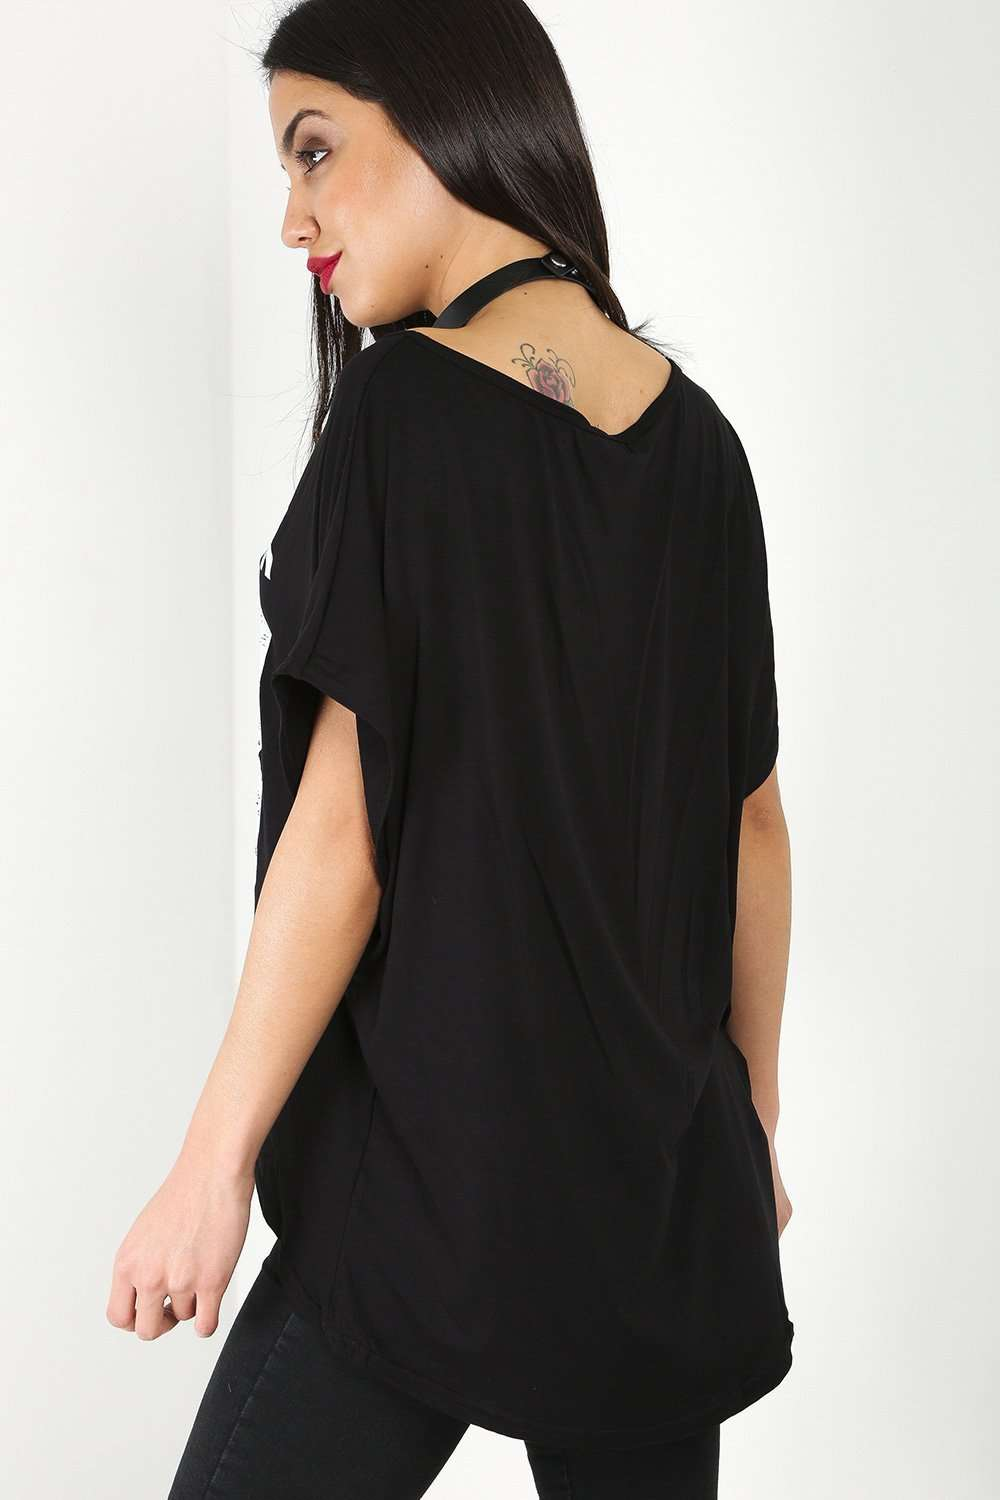 Lindie Oversized New York Bat Wing Tshirt - bejealous-com